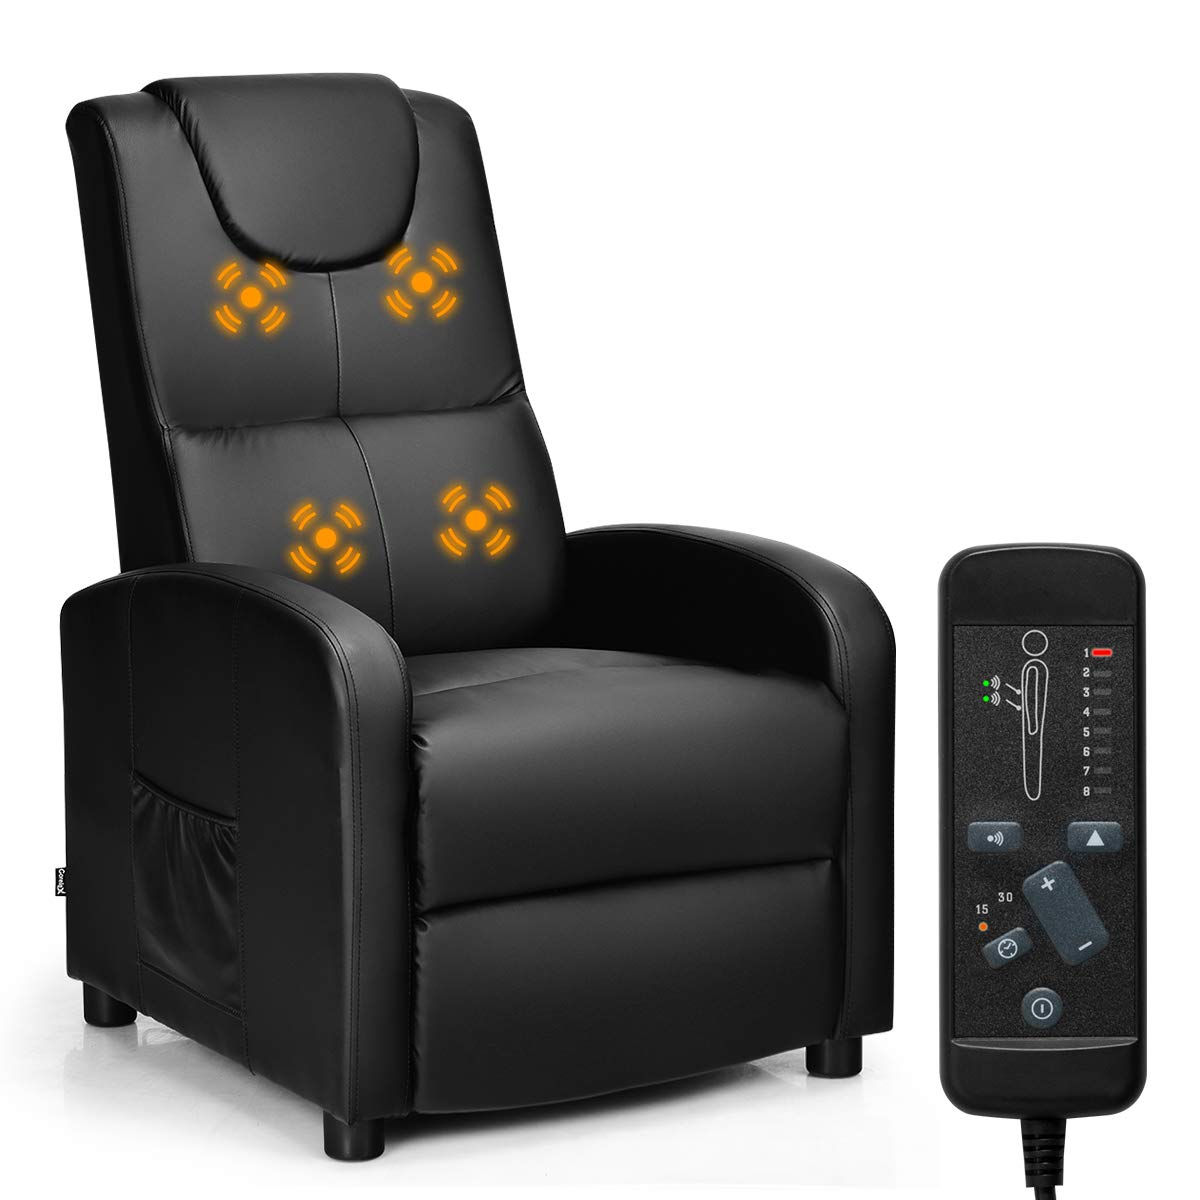 Giantex Massage Recliner Chair Single, Padded Seat Cushion and Foldable Footrest, PU Leather, Remote Control, Home Theater Seating, Modern Lounge Chaise, Living Room Office Recliner (Black)